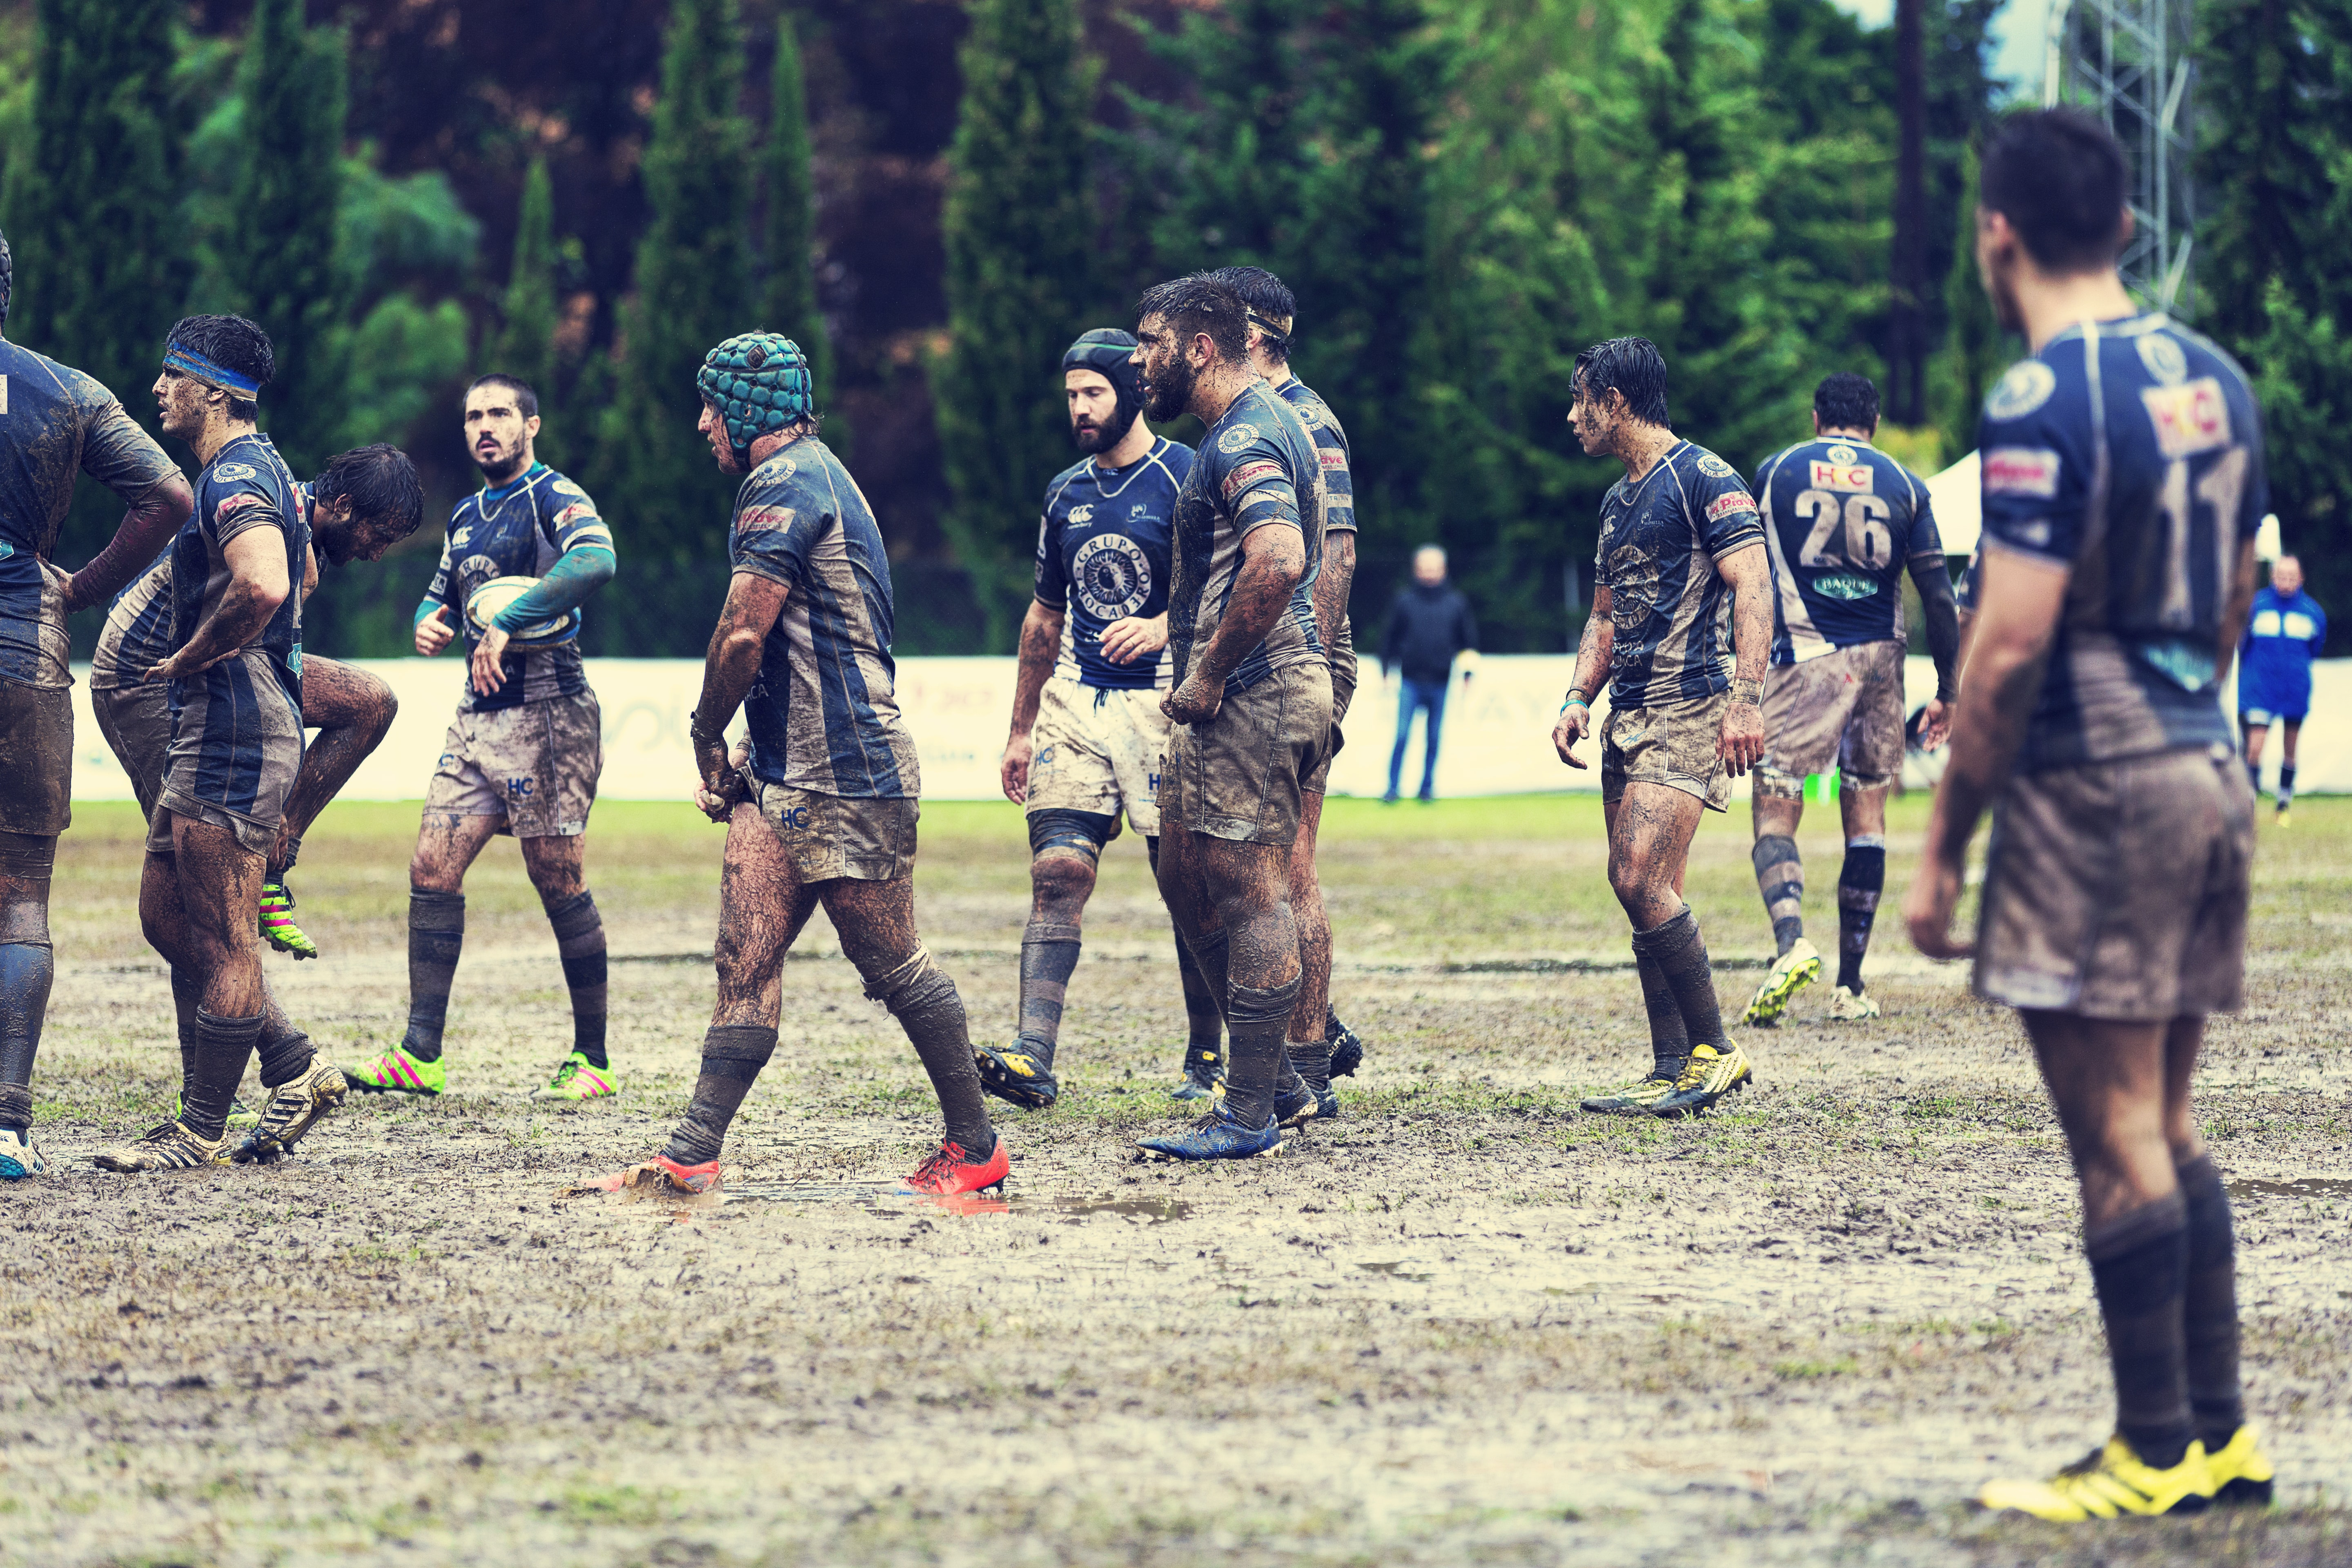 A male rugby team covered in dirt and mud on a field during a game